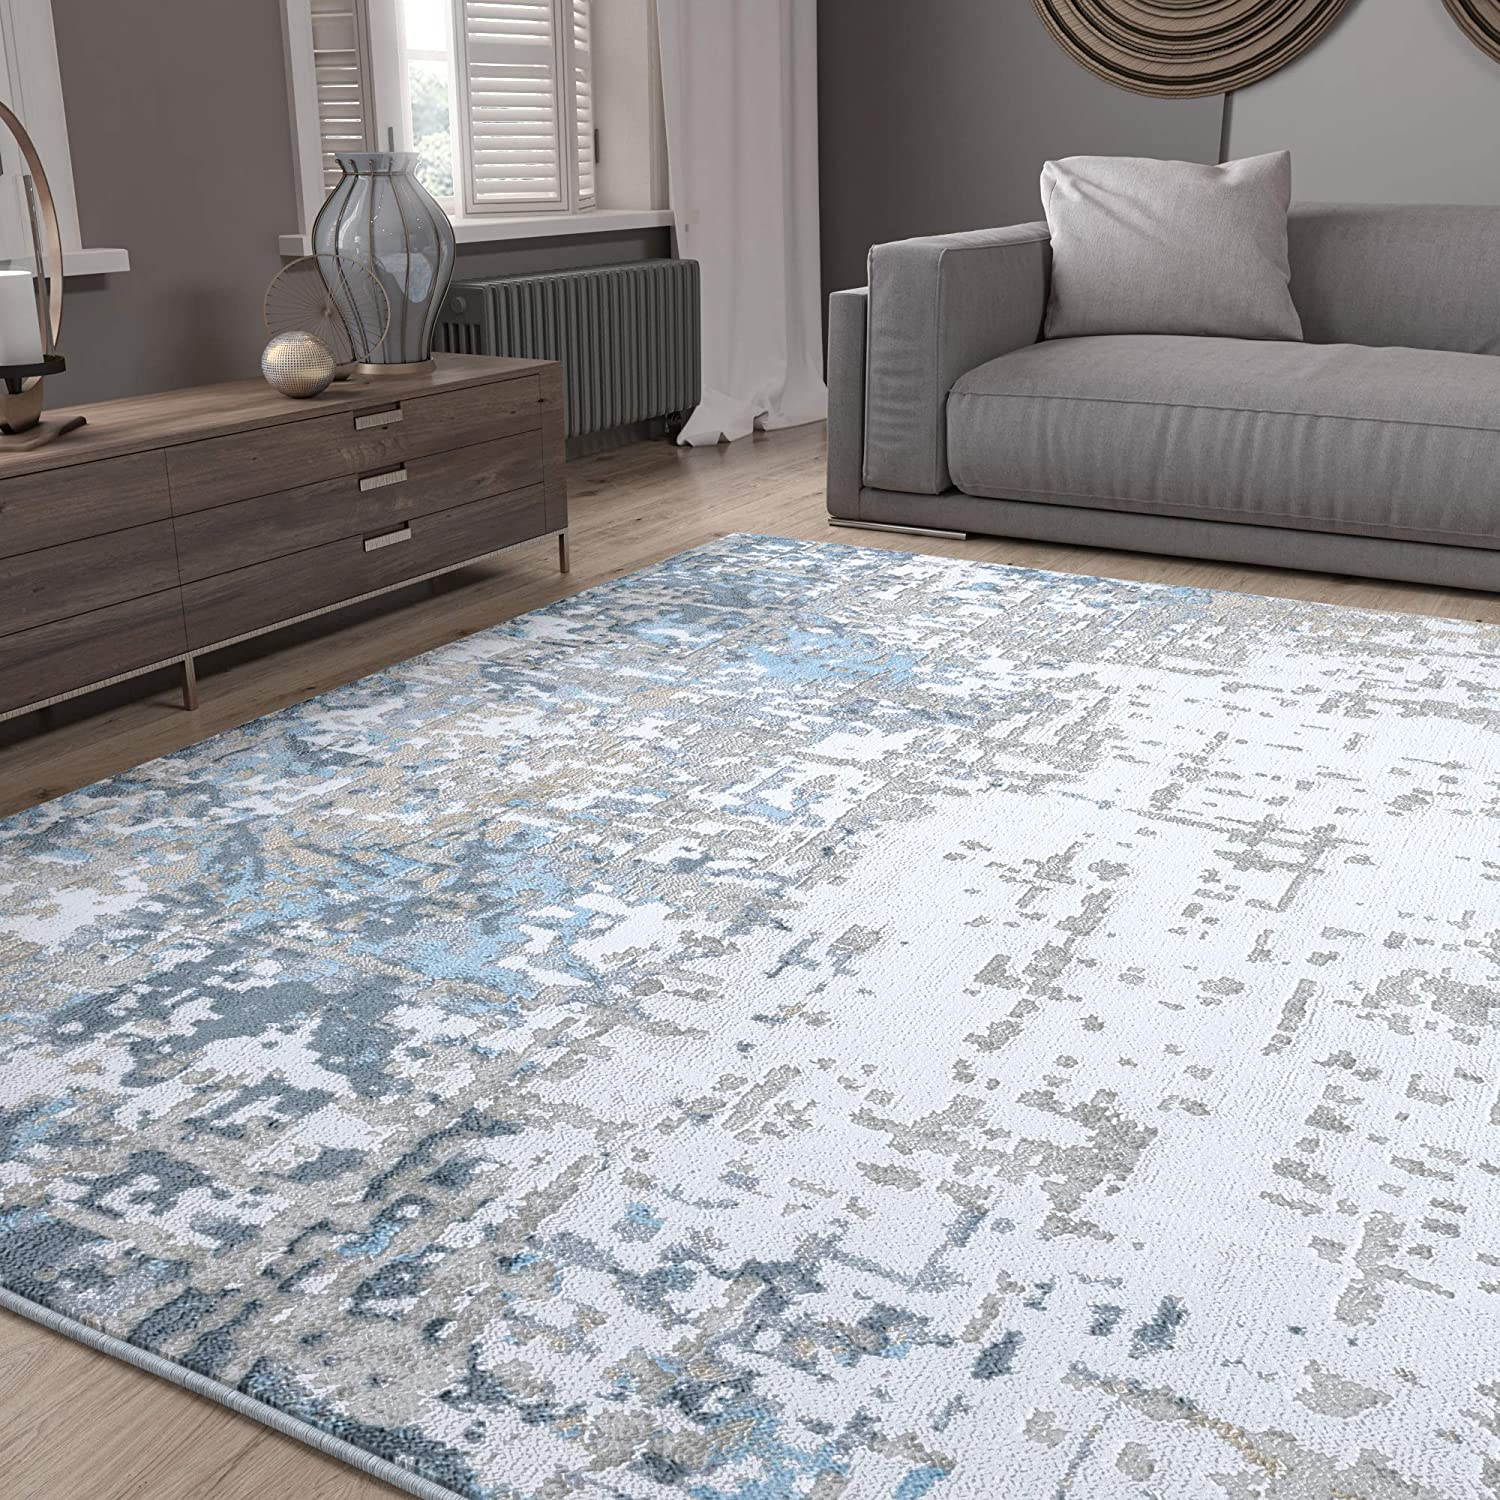 Boulder Dark Blue 8x10 Rectangle Area Max 74% OFF for o Rug Our shop OFFers the best service Living Bedroom